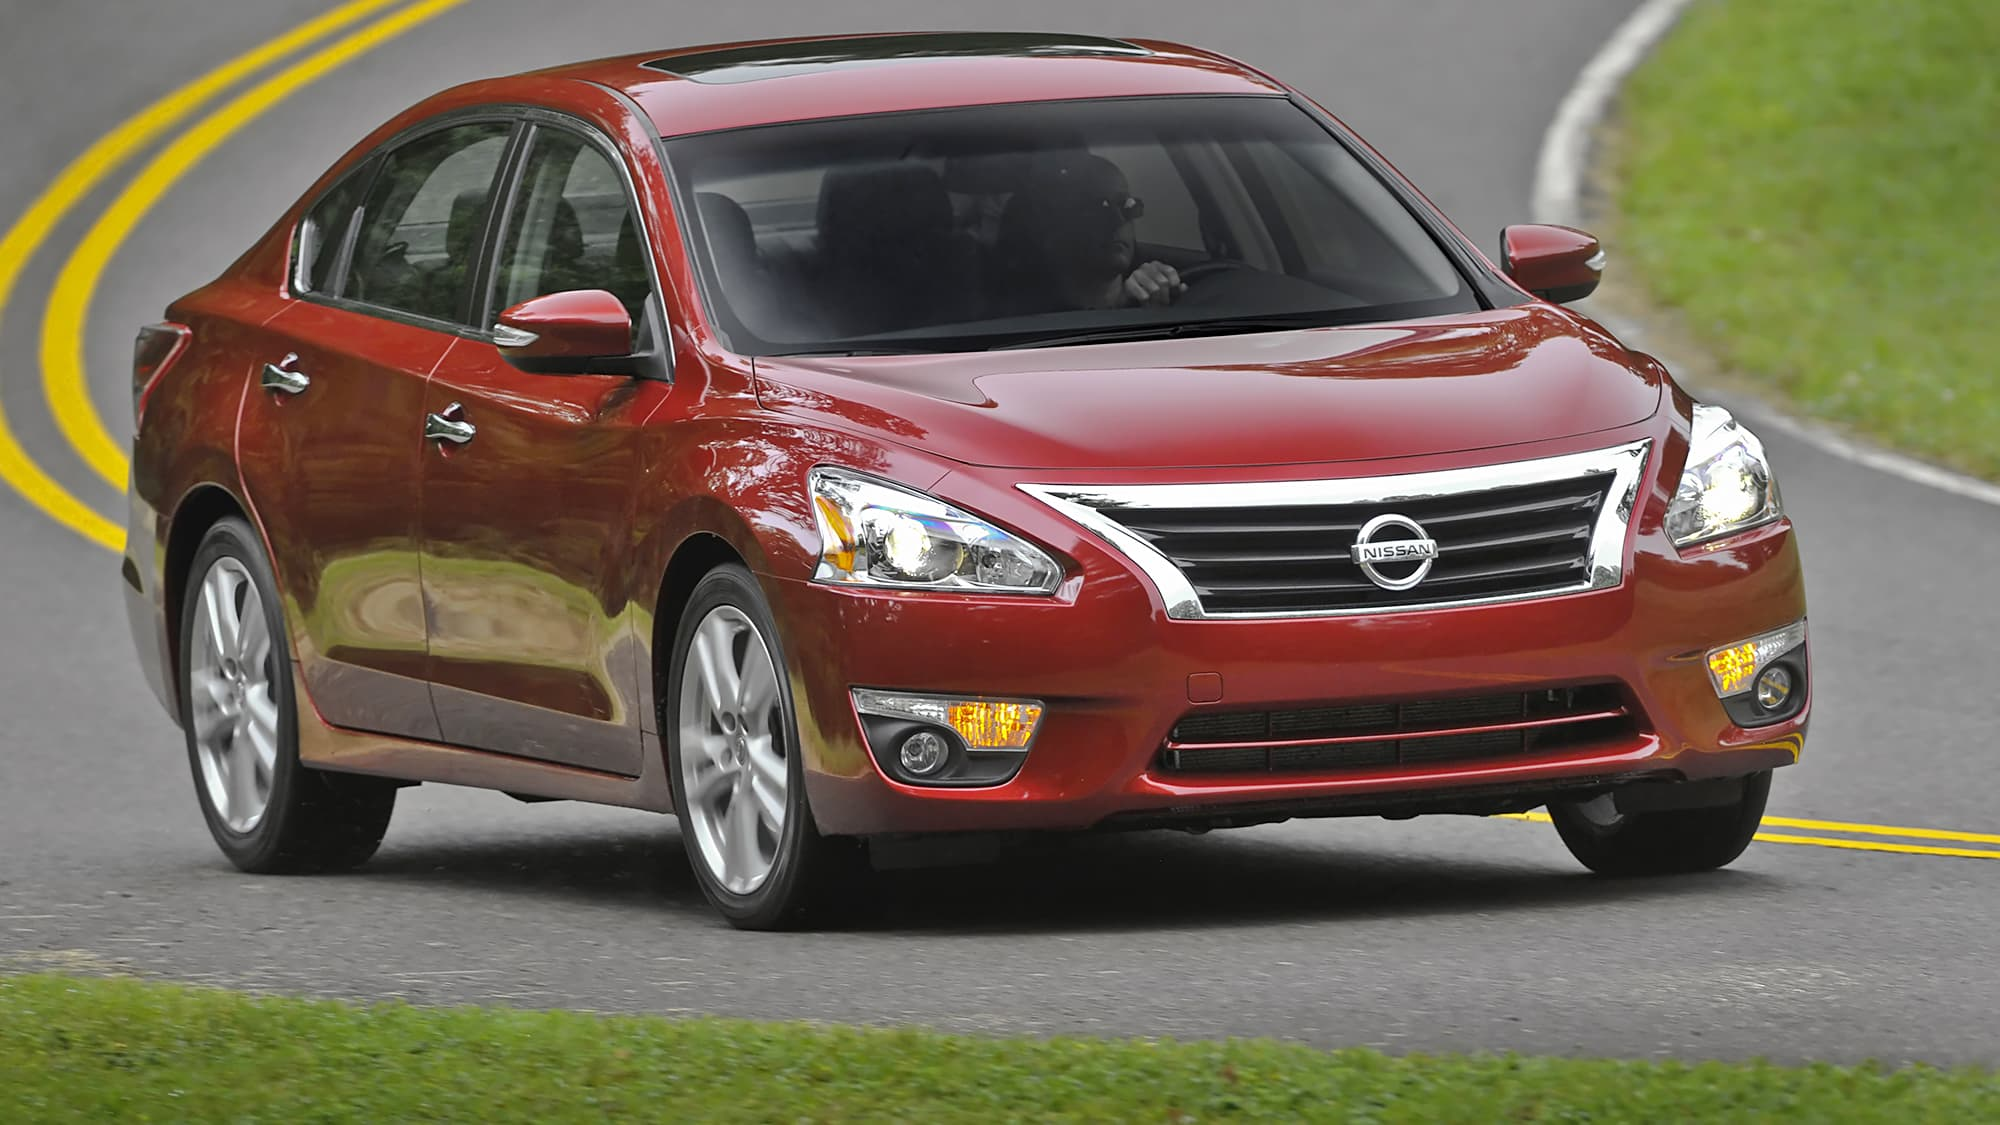 The review of models of the company Nissan. Teana 2013 - updated business sedan